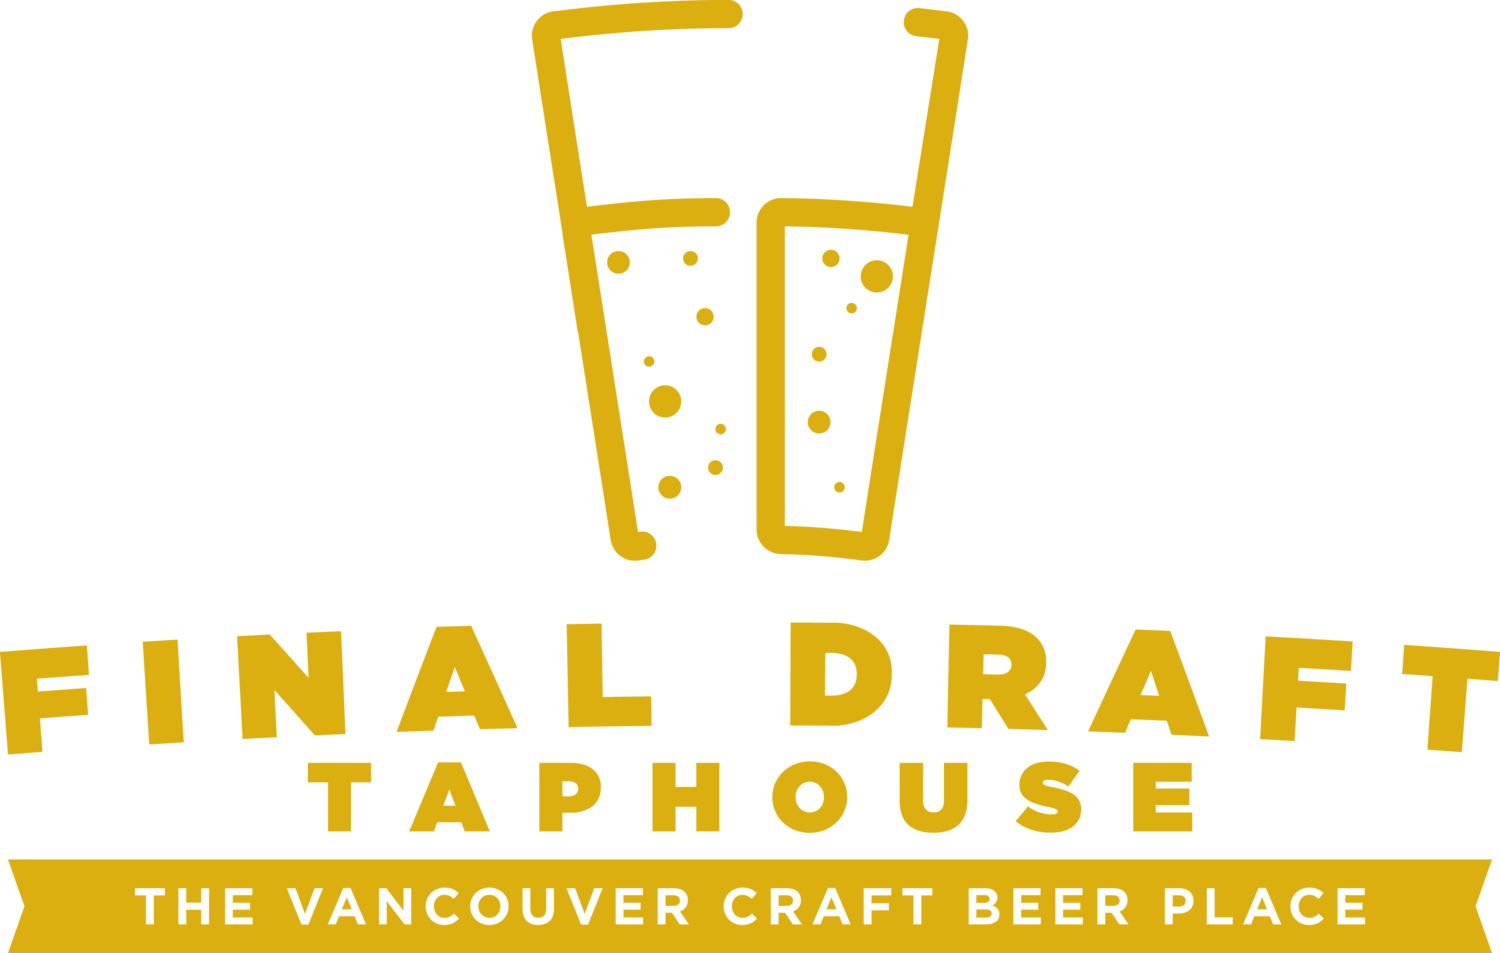 Final Draft Taphouse | Craft Beer Taproom & Bottle Shop Vancouver, WA